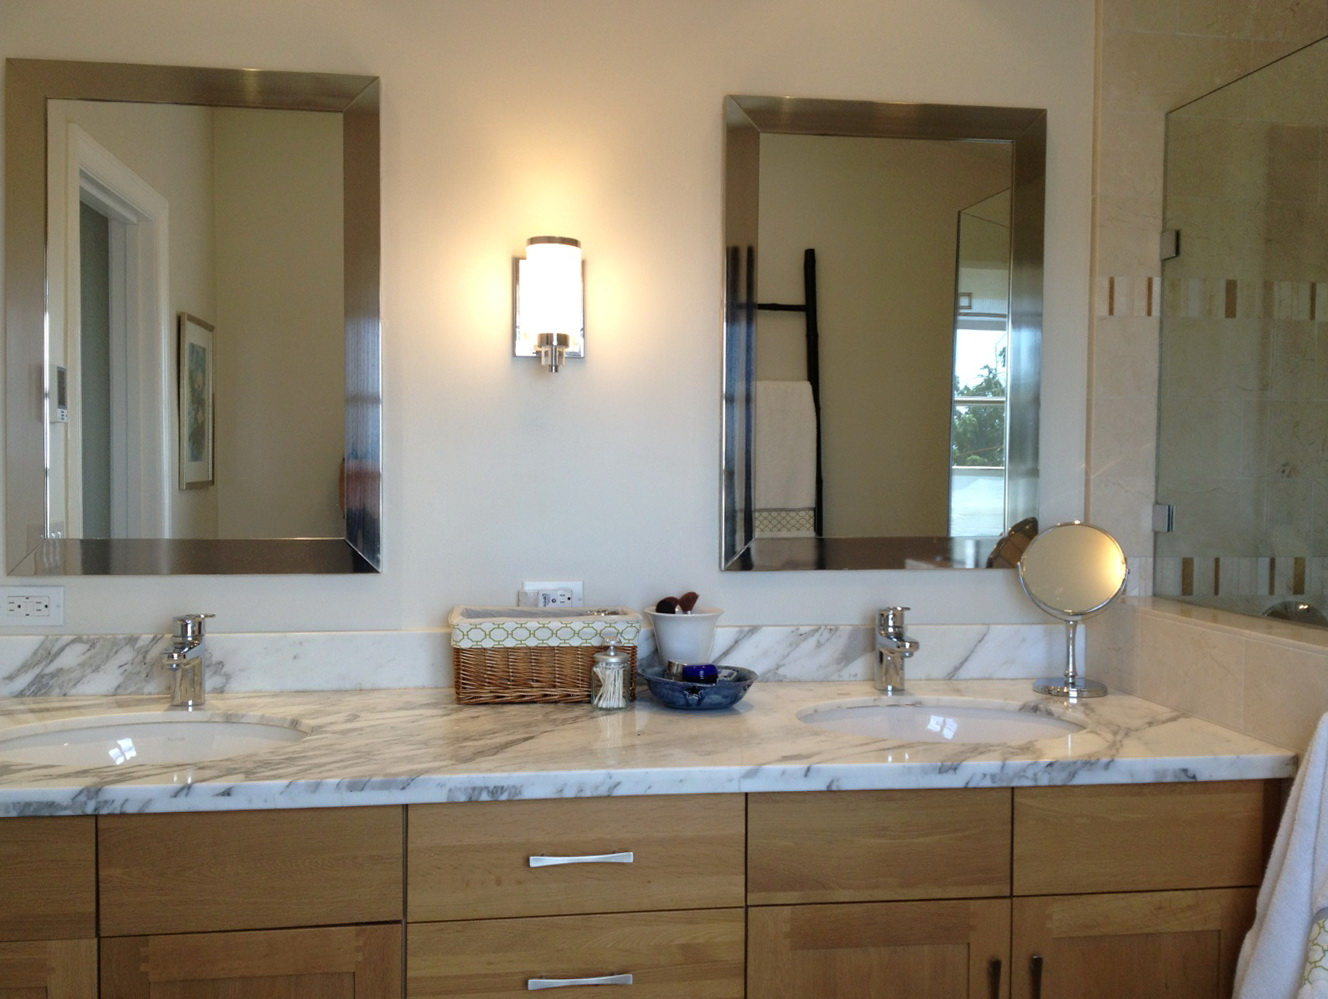 Restoration hardware mirrors bath home design ideas for Bathroom restoration ideas